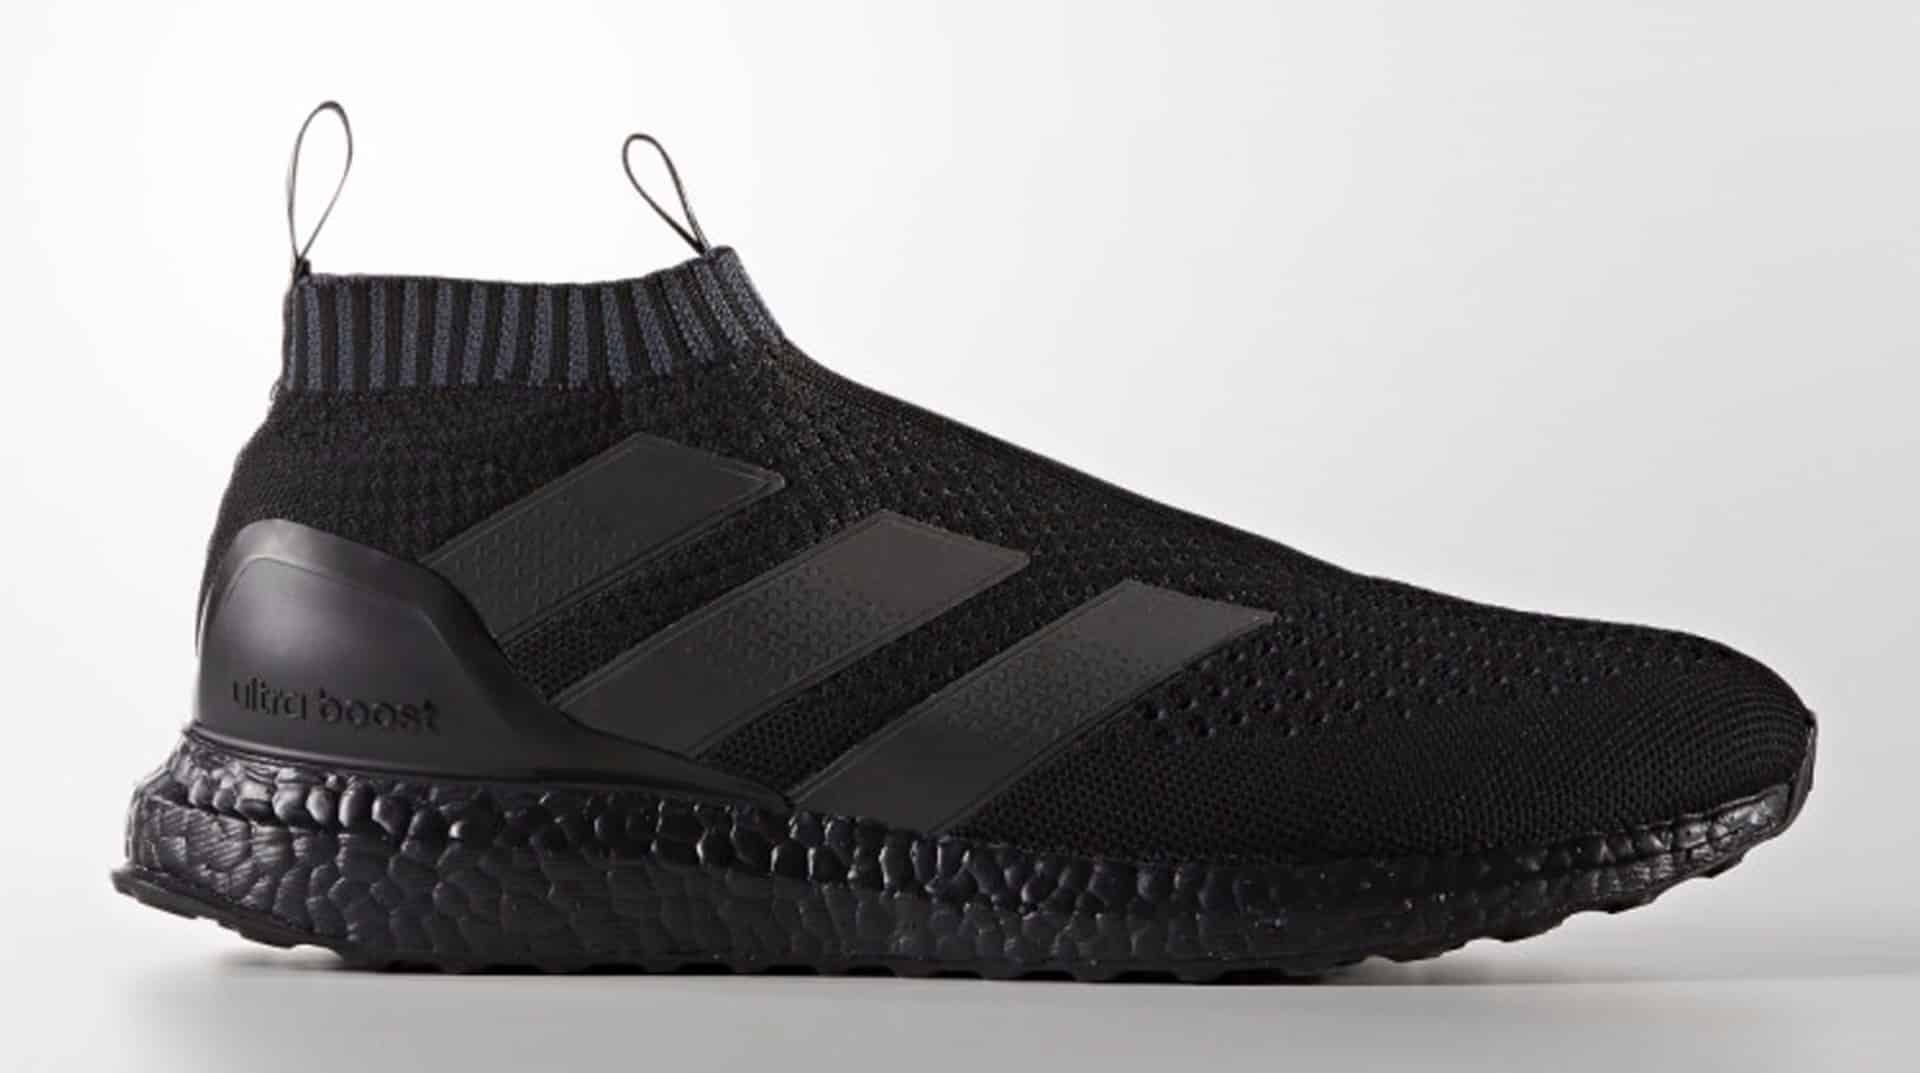 e5914f3e2 netherlands adidas ace 16 purecontrol ultraboost gris w22k9836 b07b0 f9352   reduced une adidas ace16purecontrol ultraboost blackout 620d7 5ce51